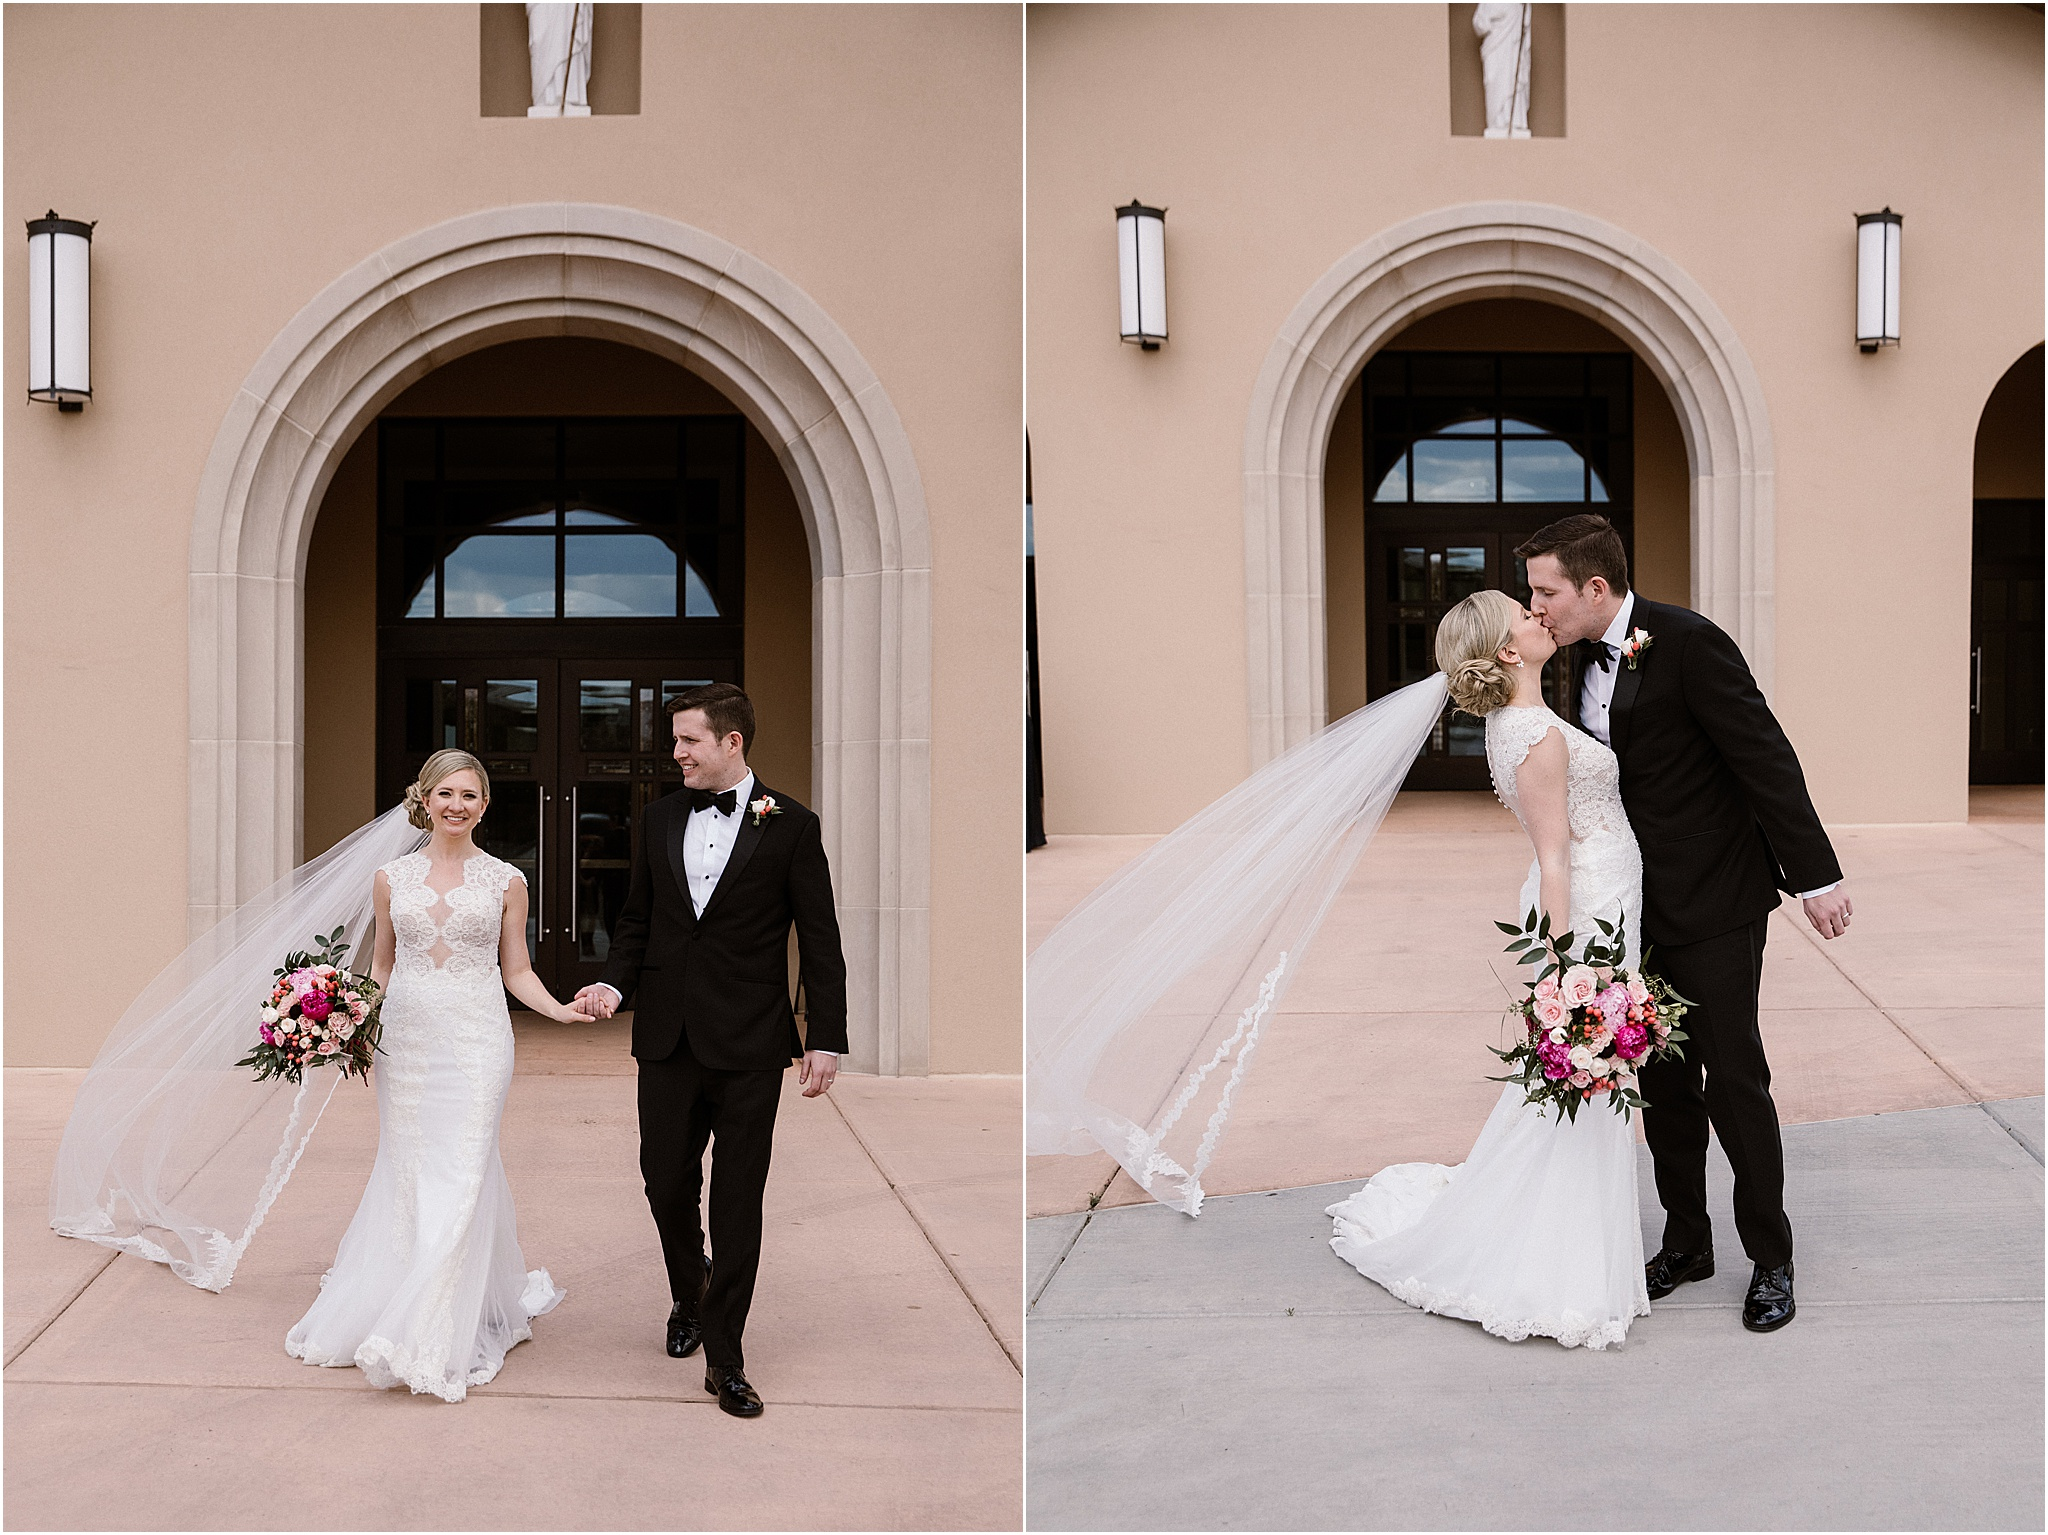 JENNA_JEROME_BLUE ROSE PHOTOGRAPHY_ABQ WEDDING_24